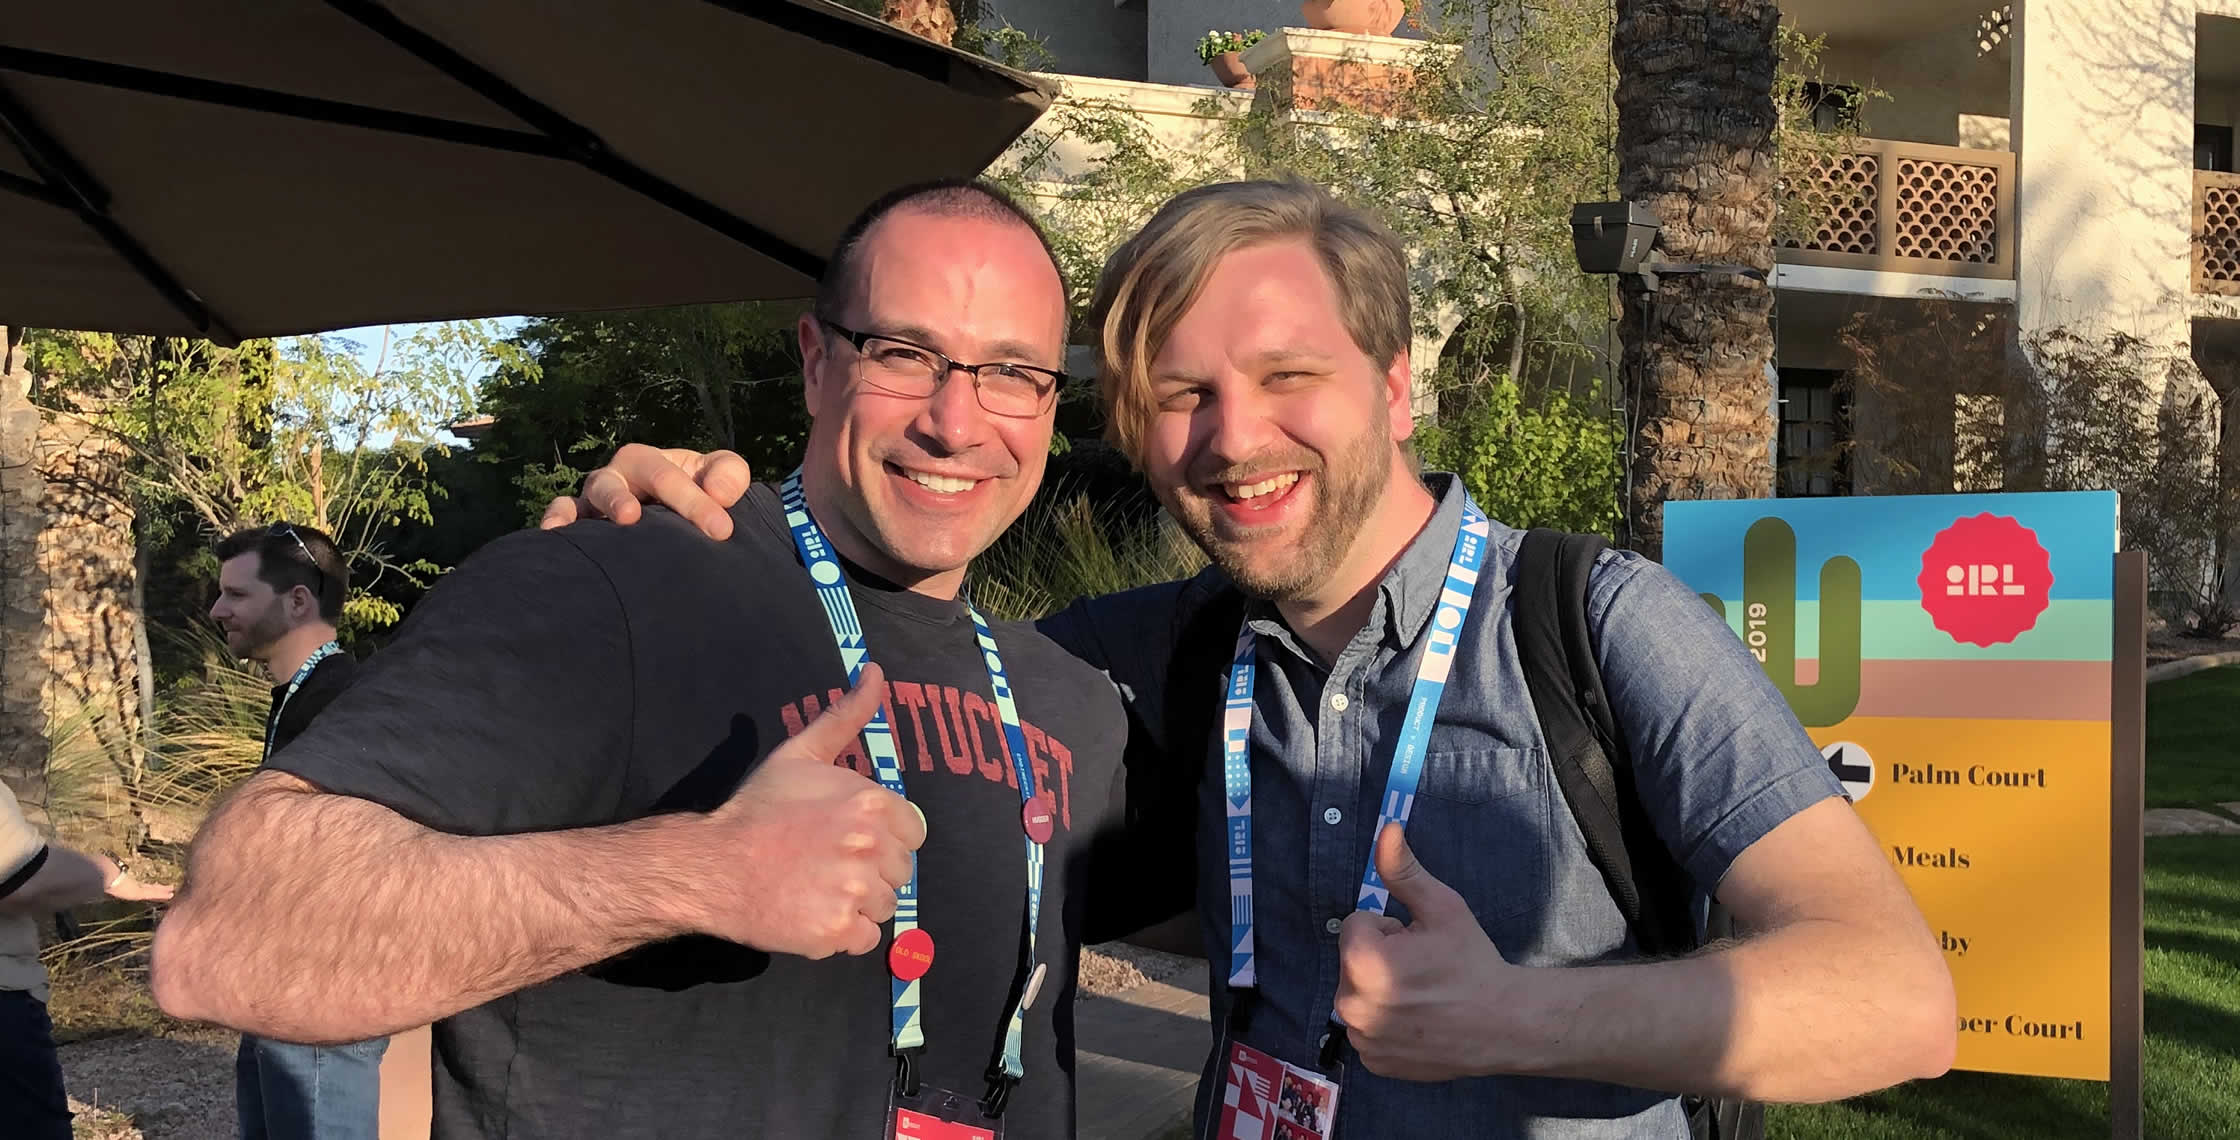 Ben Nadel at InVision In Real Life (IRL) 2019 (Phoenix, AZ) with: Ben Michel